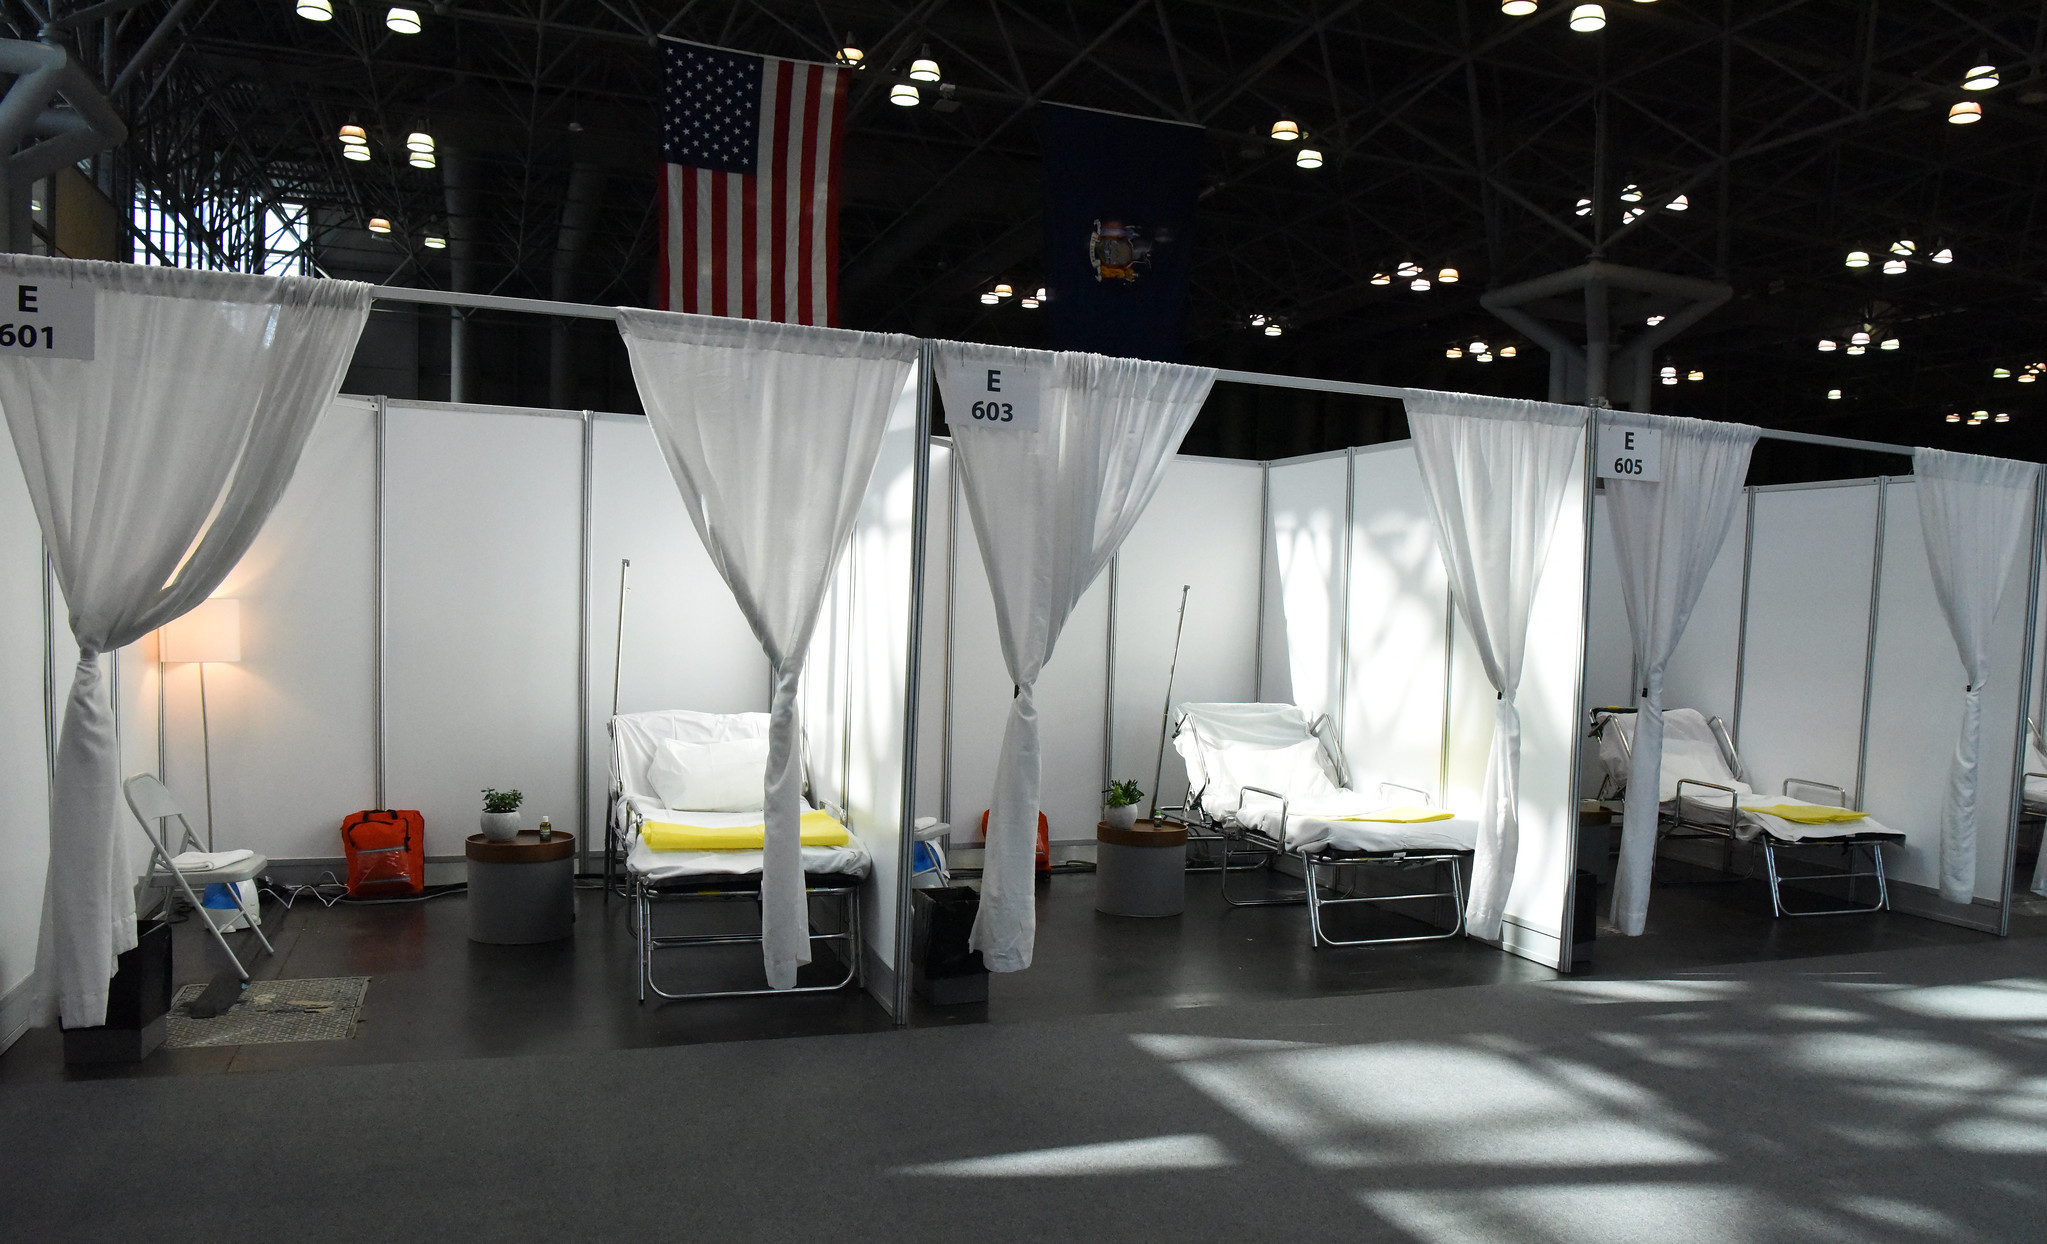 a makeshift coronavirus hospital room in the converted Jacob Javits convention center